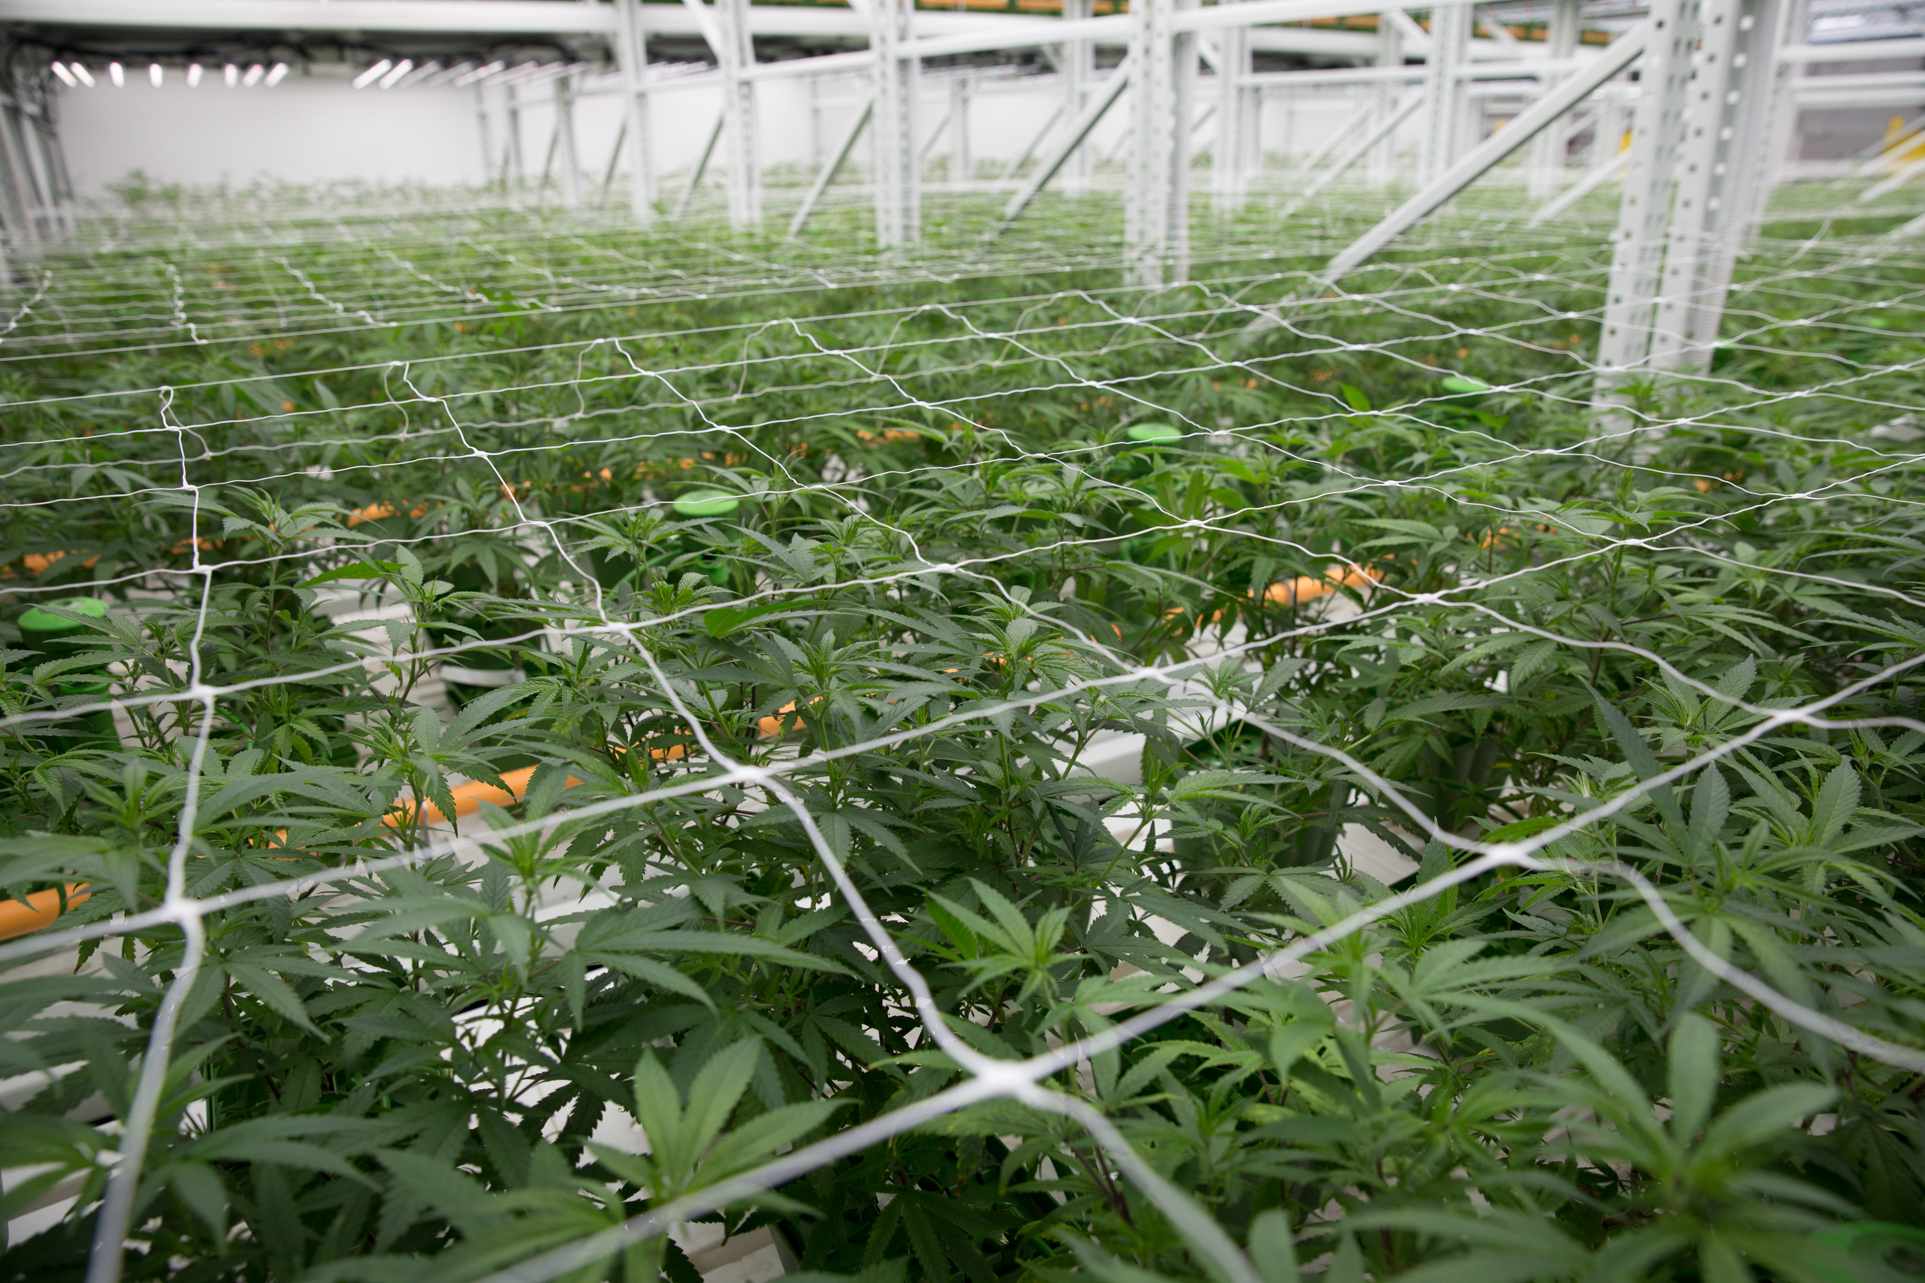 hight resolution of trellises and netting help keep the cannabis plants from sprawling into the aisles where they might get bumped or broken